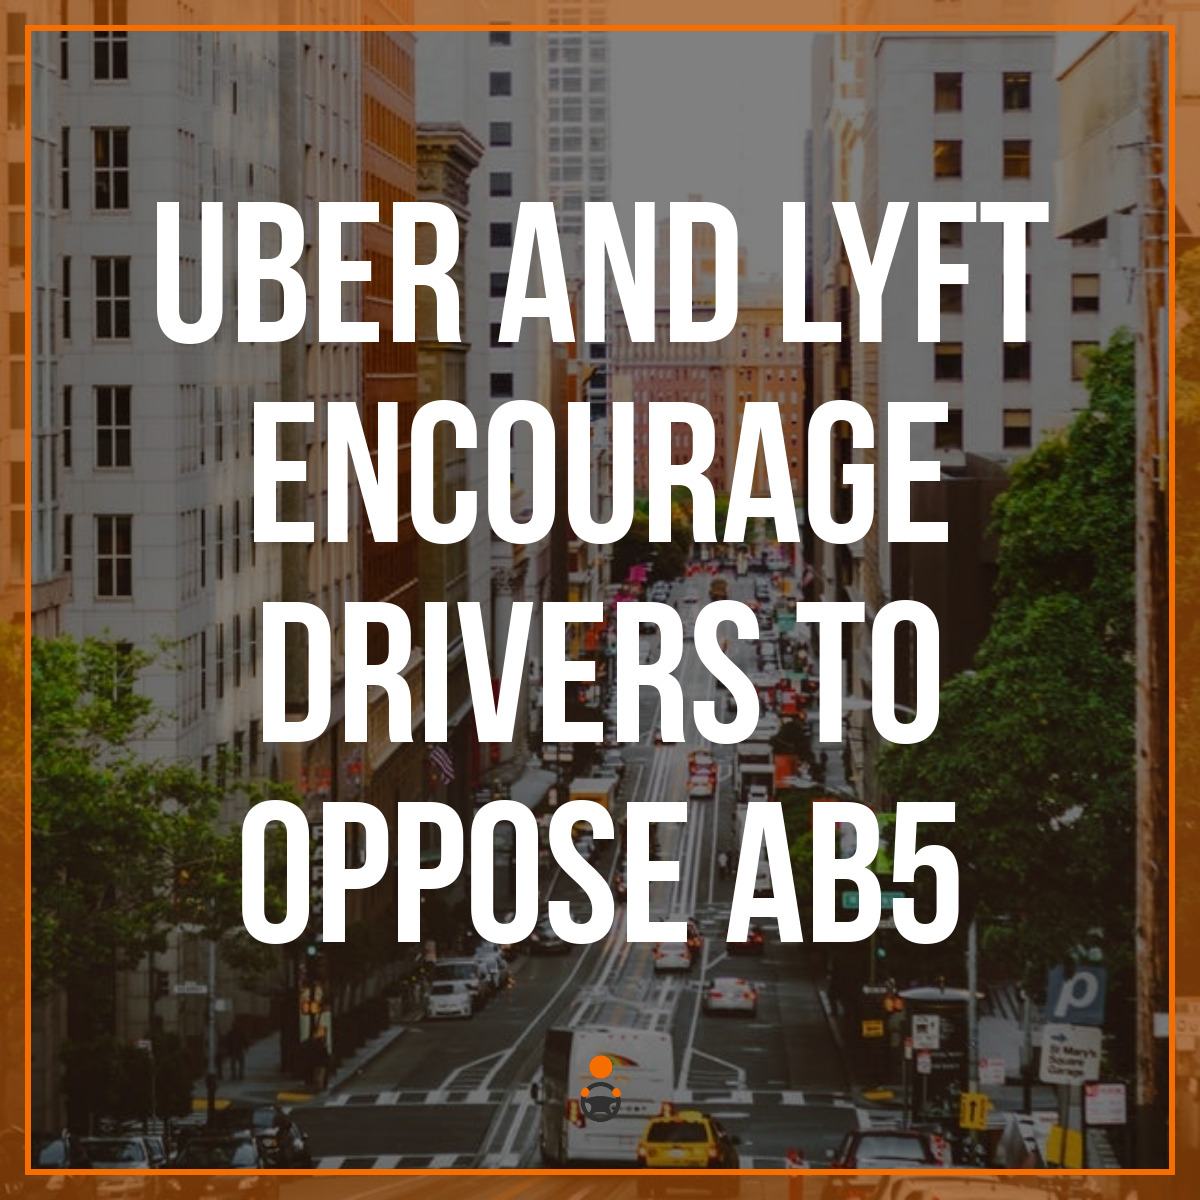 Uber and Lyft Encourage Drivers to Oppose AB5